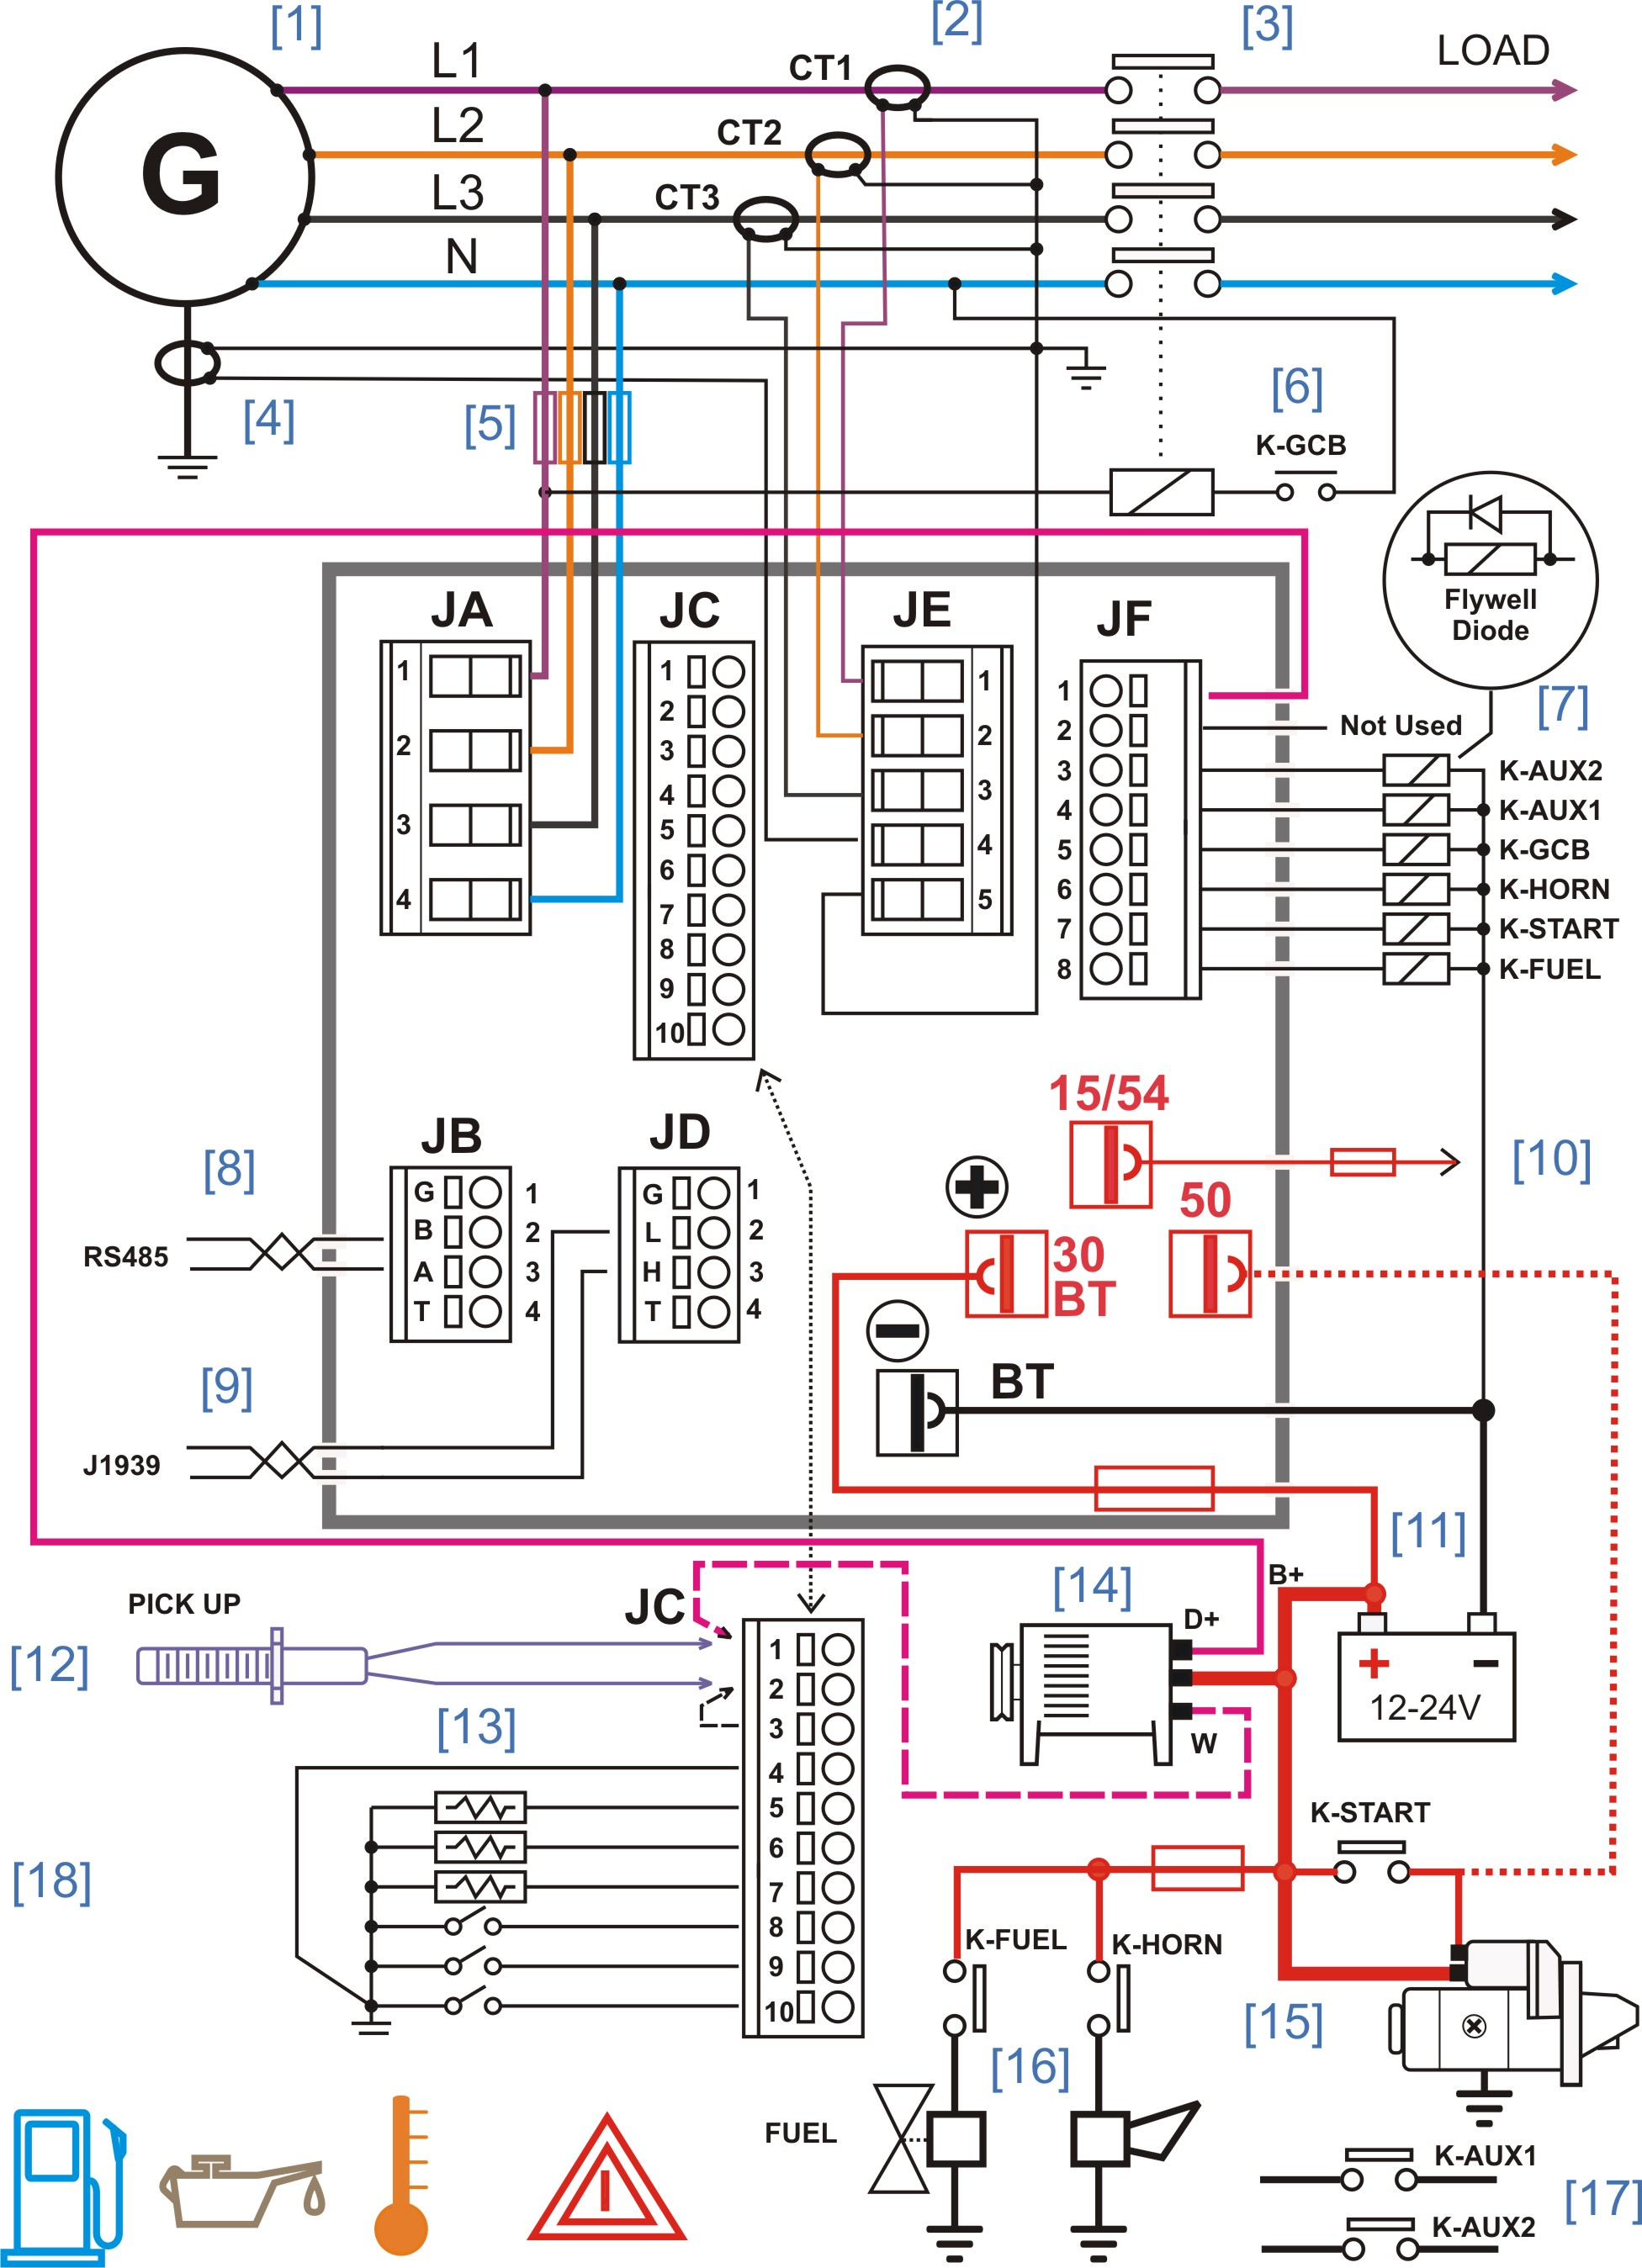 diesel generator control panel wiring diagram genset controller diesel generator control panel wiring diagram connections